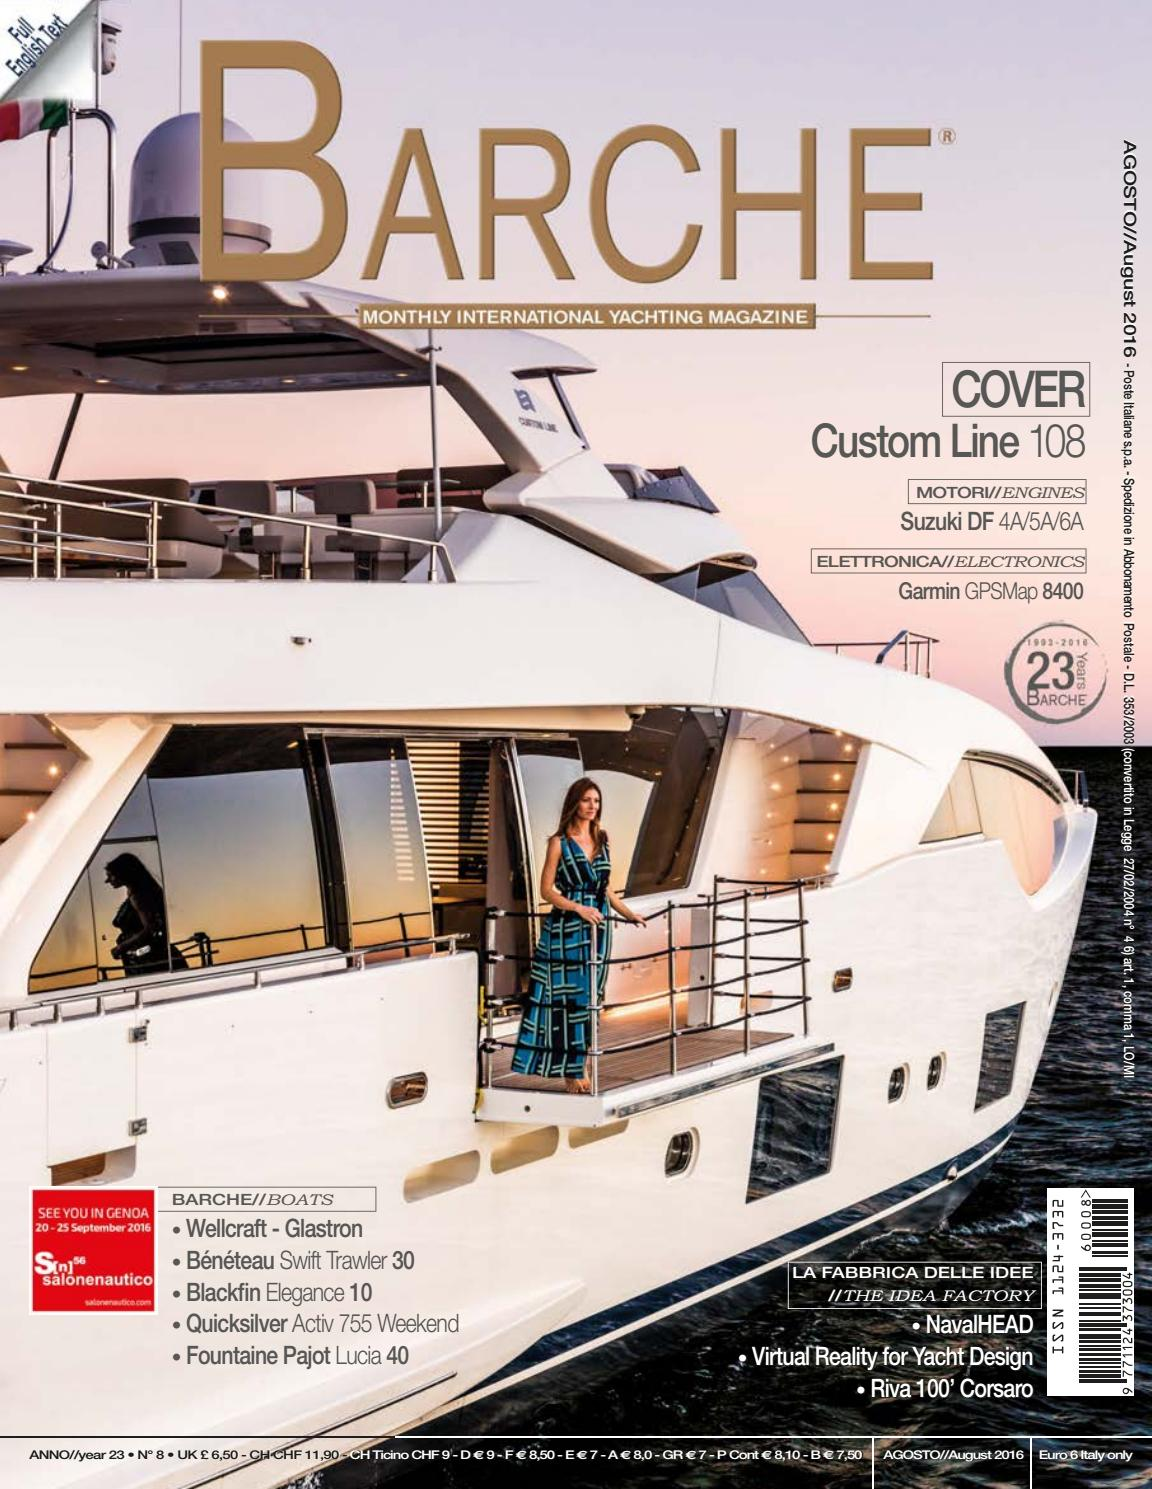 Barche August 2016 by INTERNATIONAL SEA PRESS SRL - BARCHE - issuu bdae91dd55a